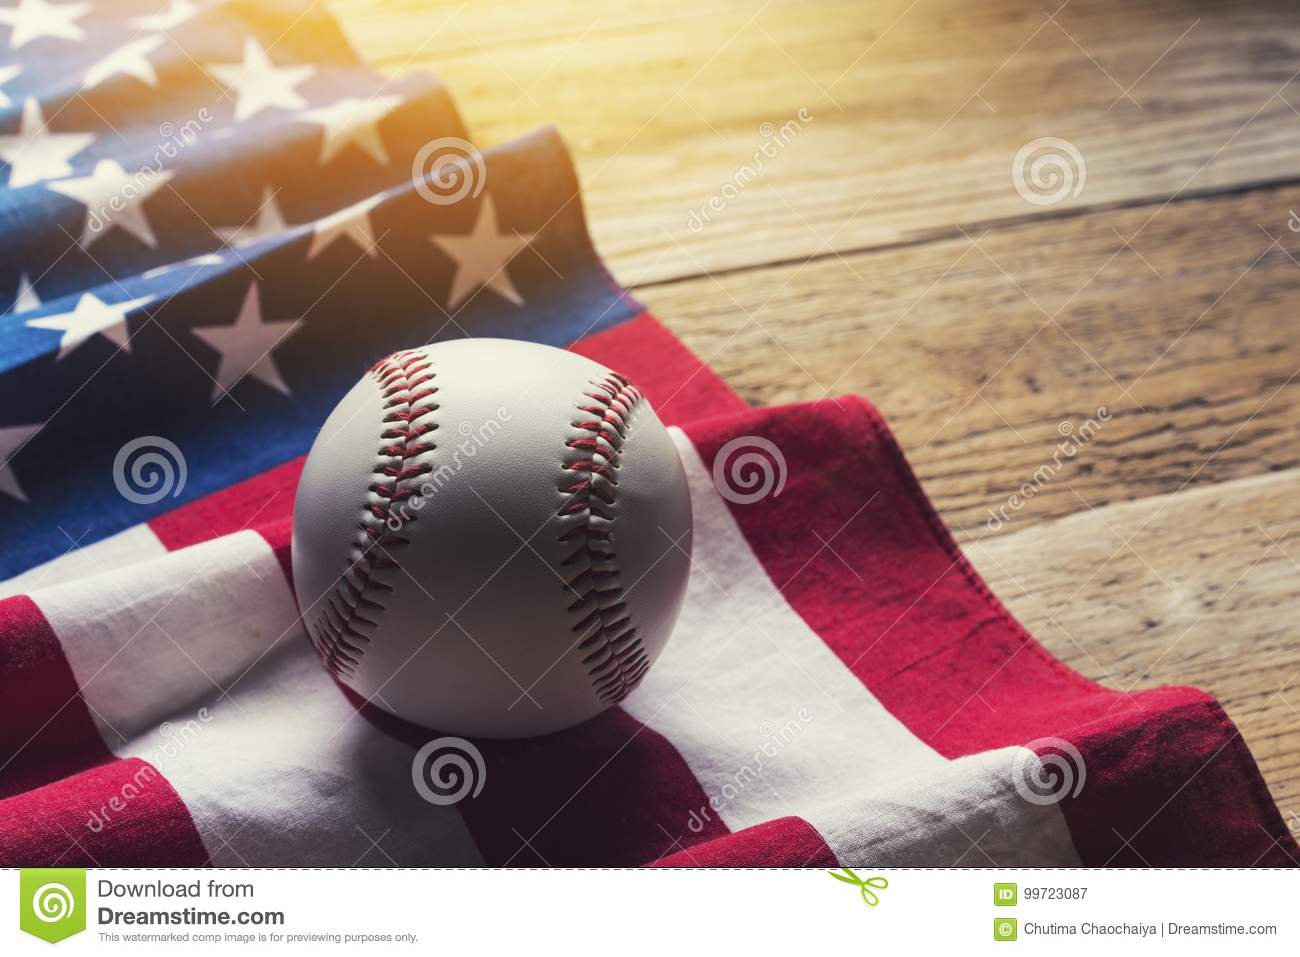 Baseball With American Flag In The Background Stock Image - Image of ... 4e9750d11